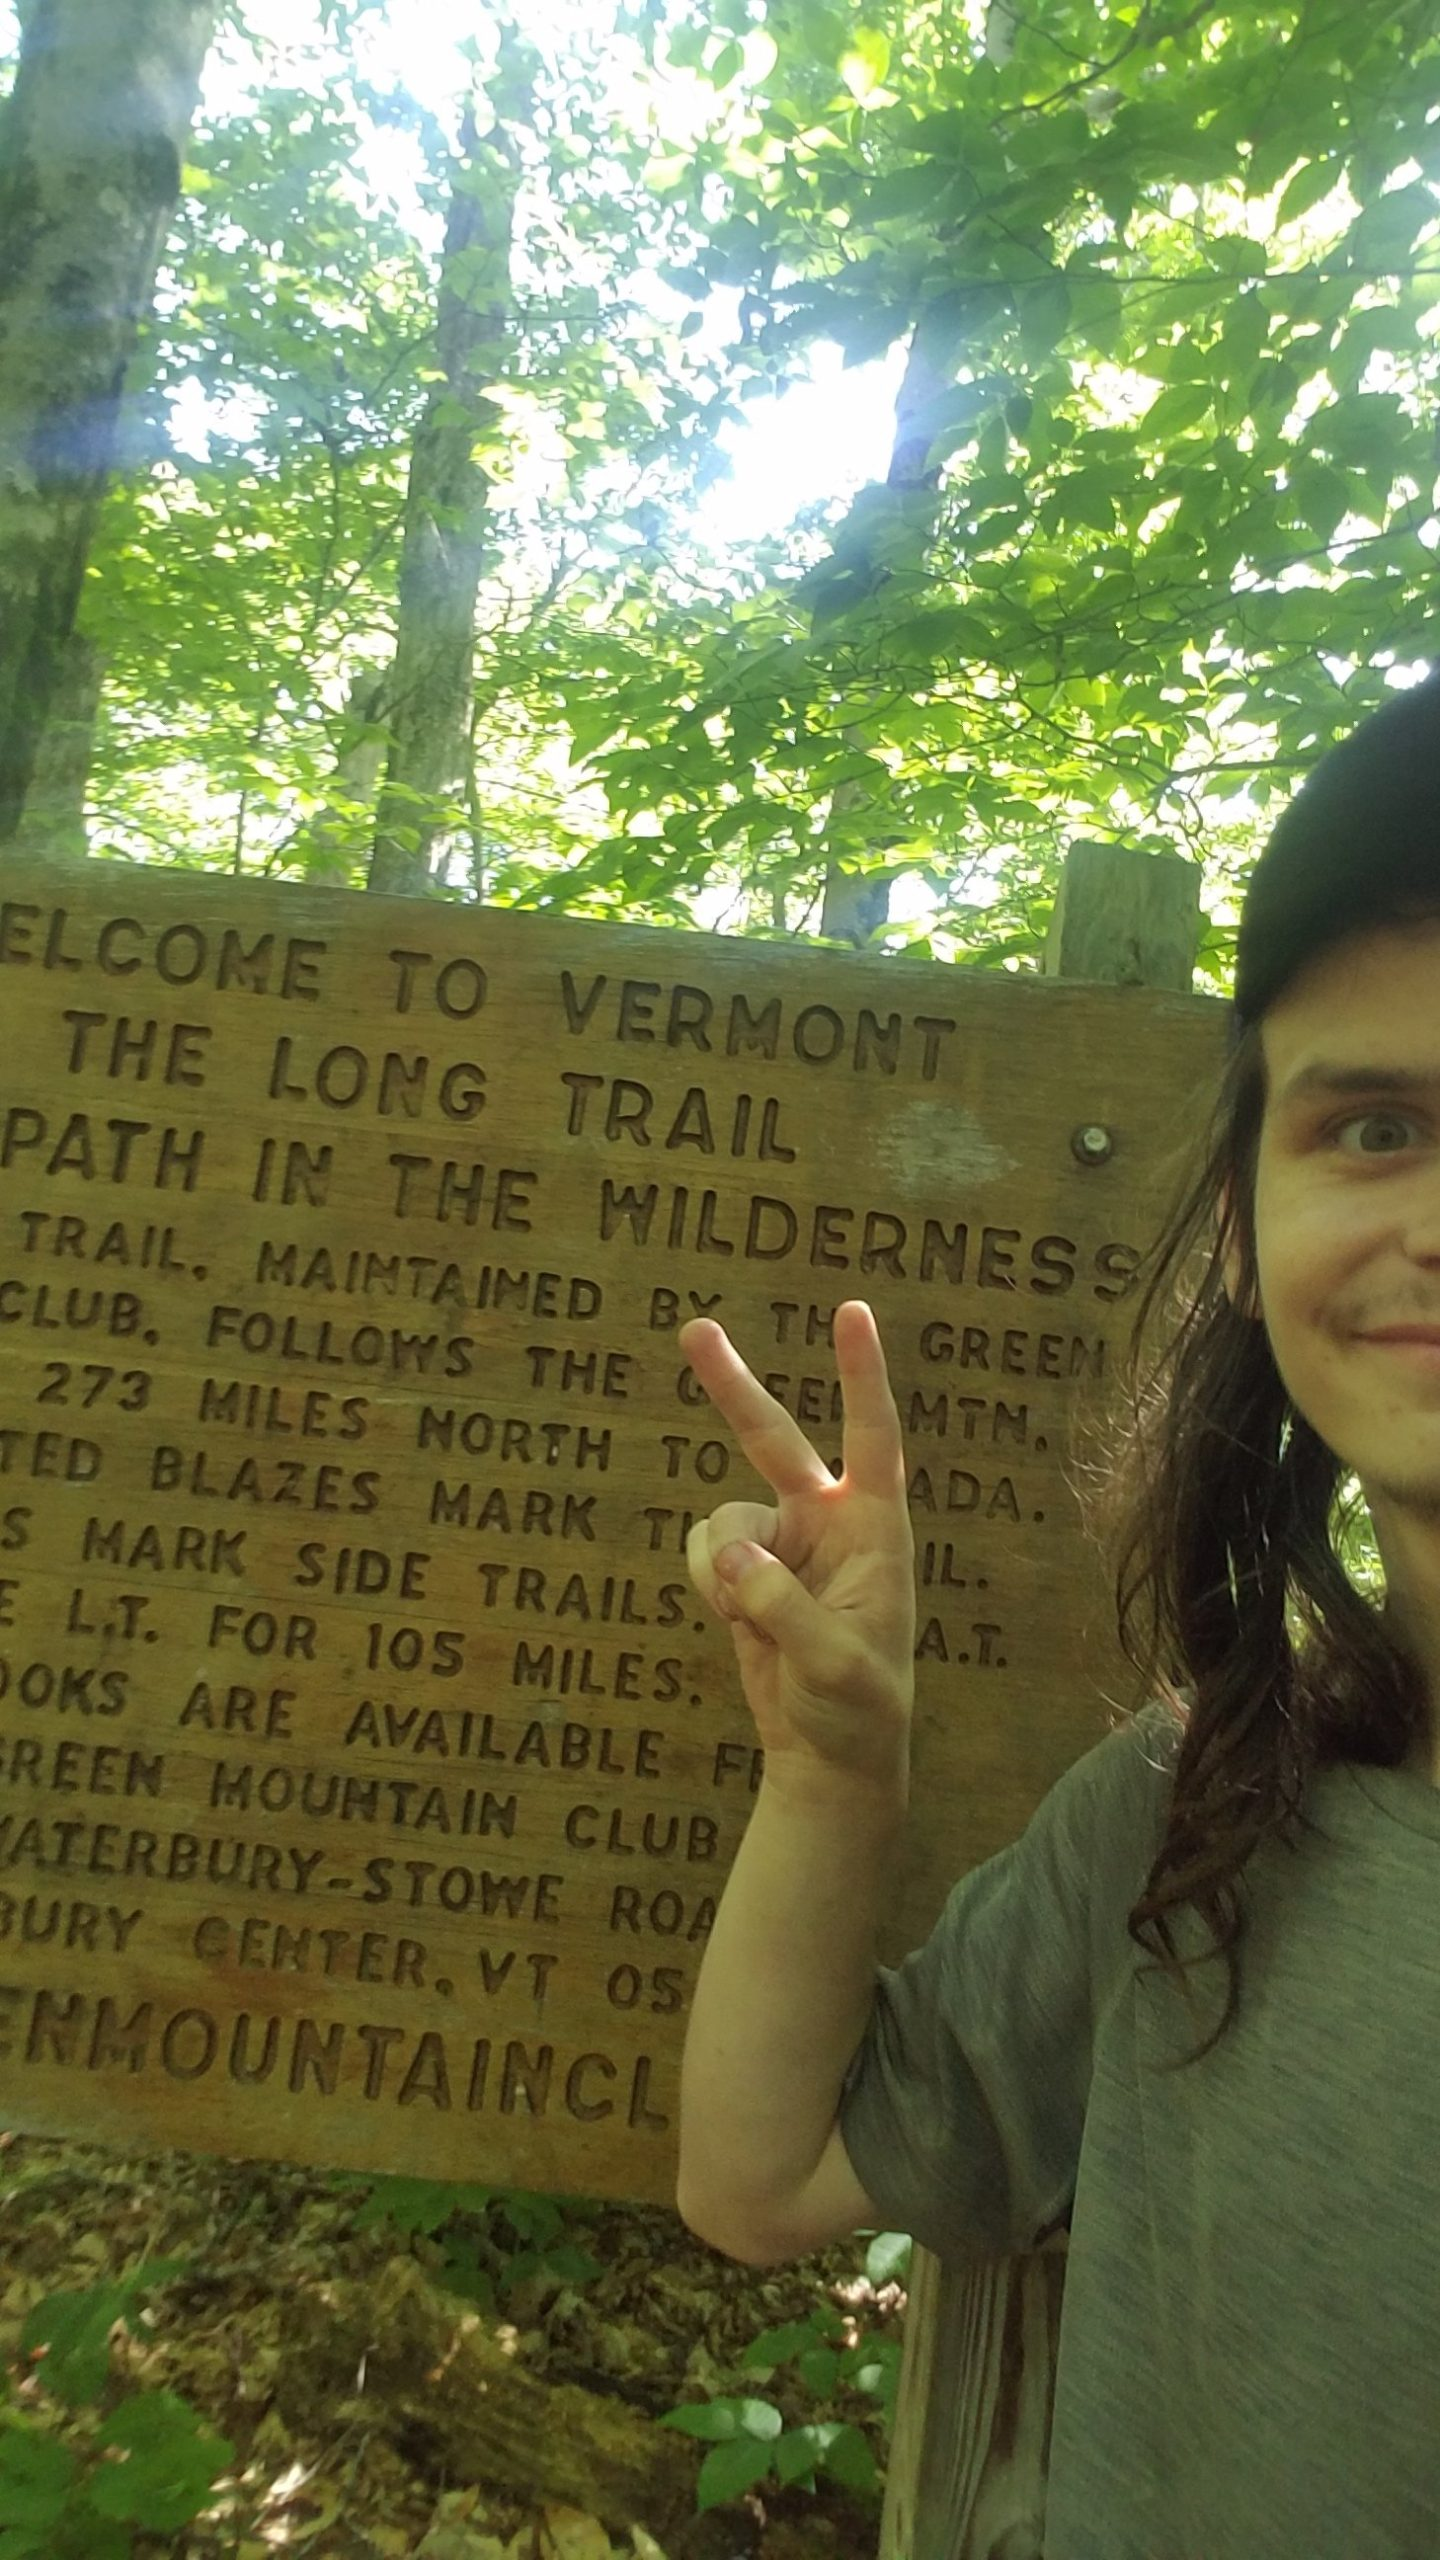 I stand at the Vermont border with a sign indicating the start of the Long Trail ehind me